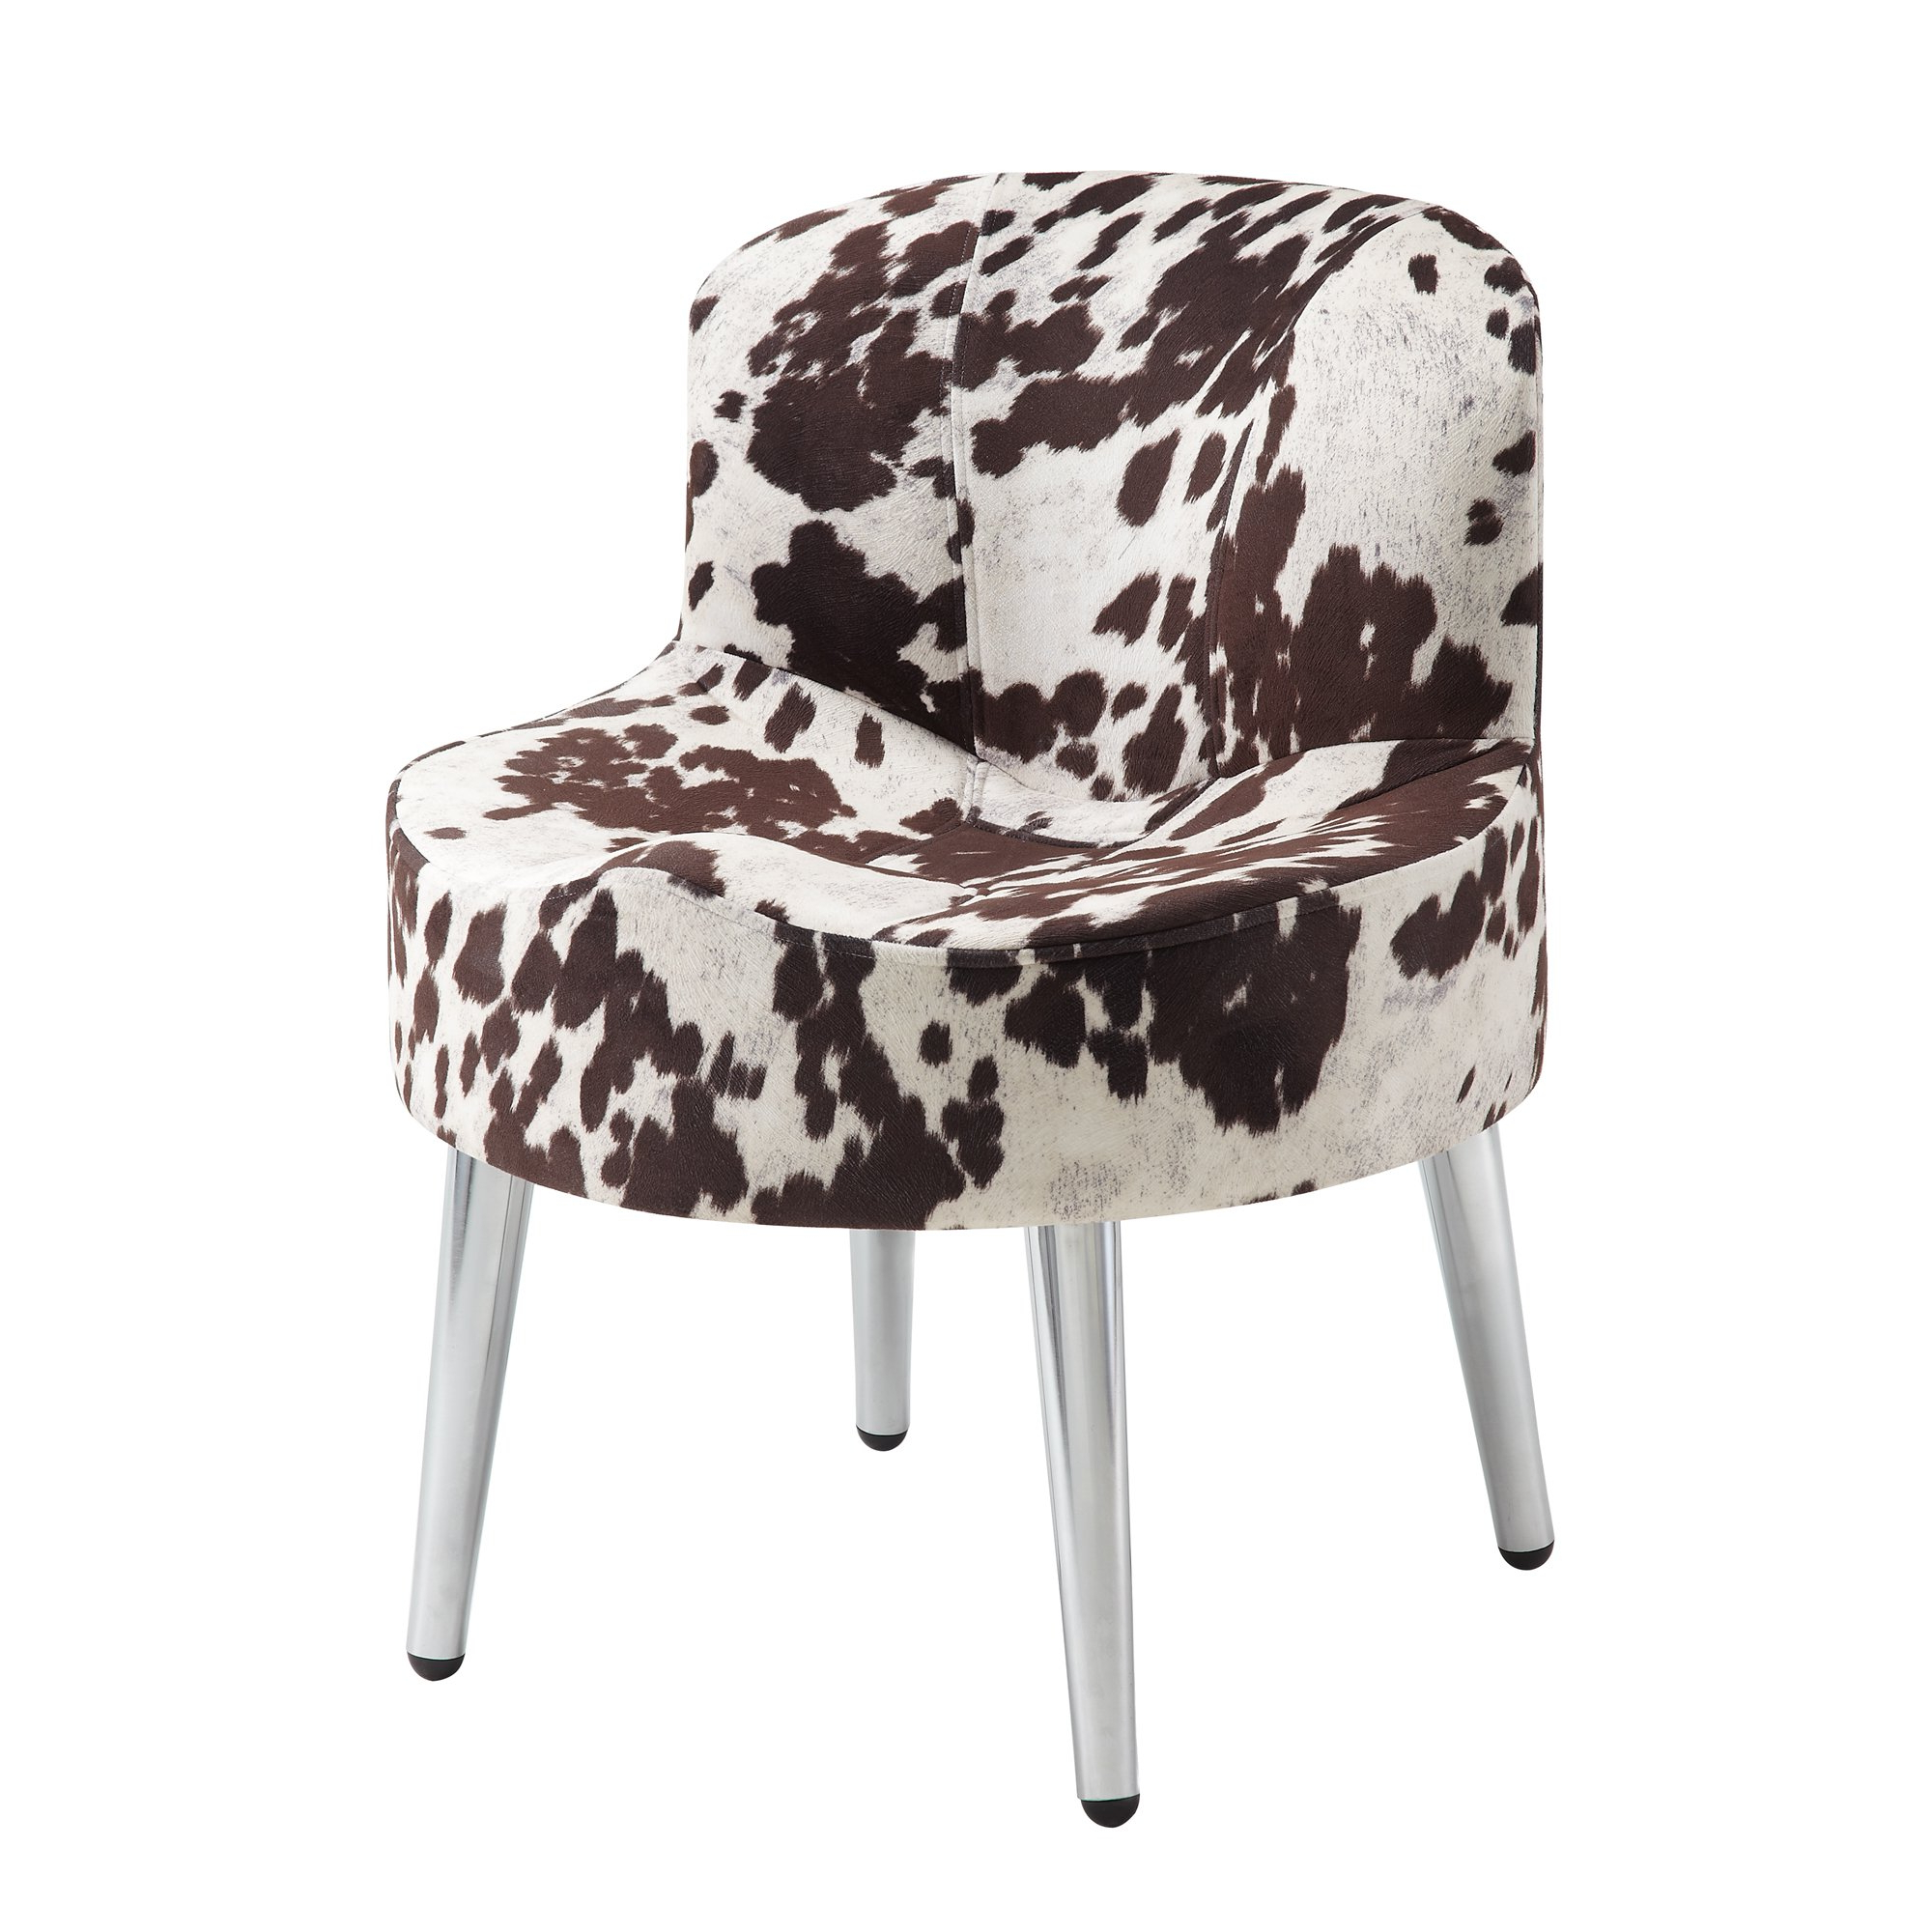 Widely Used Shop Tribecca Home Bridgeport Ergonomic Contour Cowhide Fabric Inside Circuit Swivel Accent Chairs (View 9 of 20)